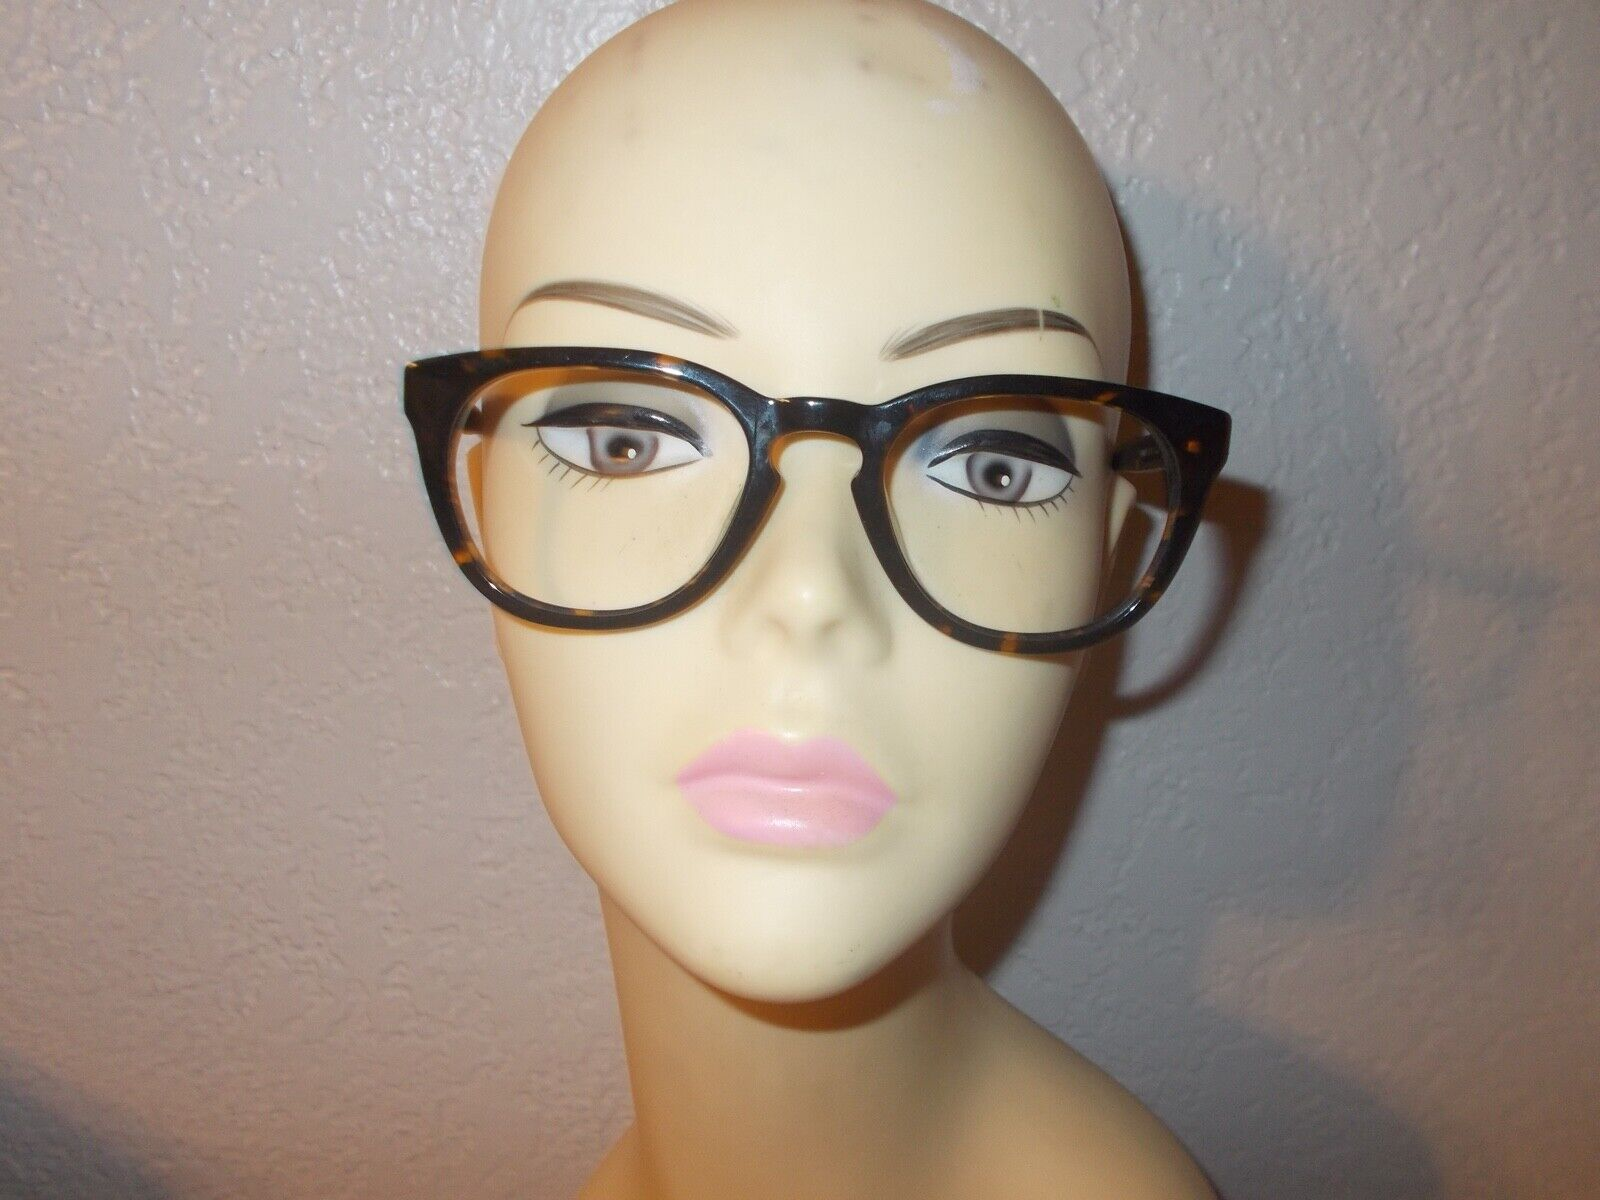 Warby Parker Ormsby 200 Tortoise Frame Sunglasses - image 2